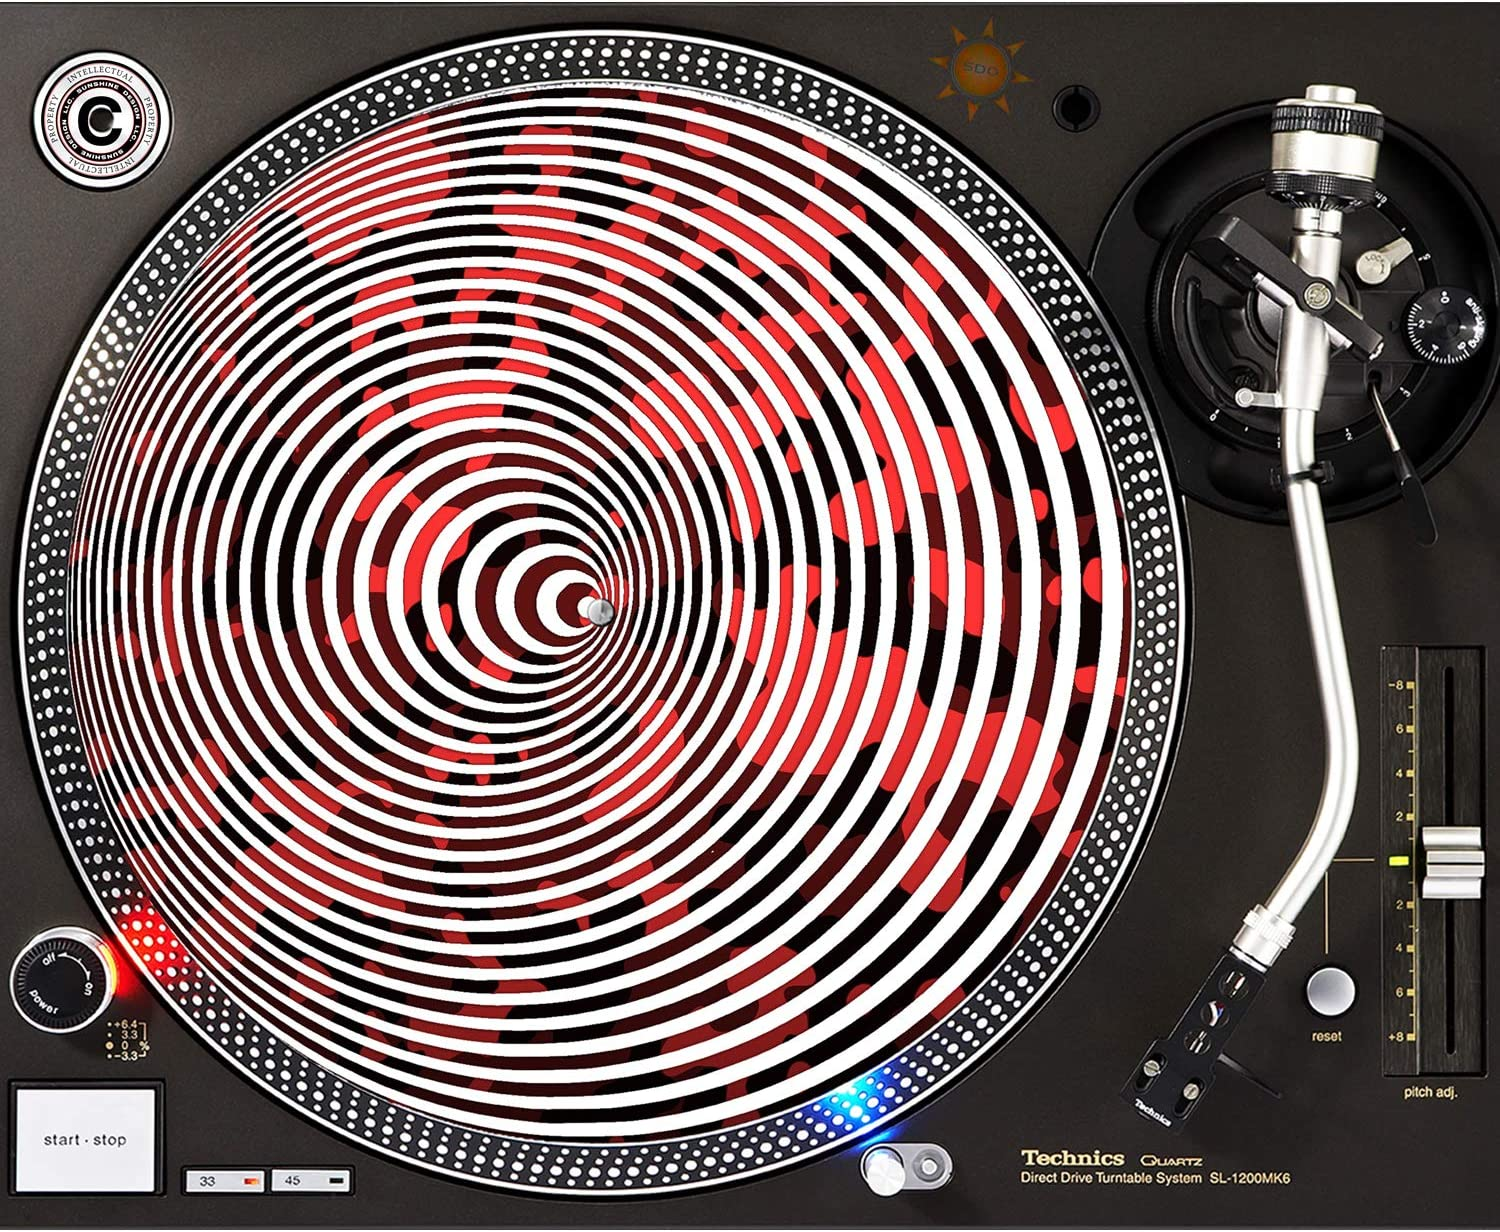 Camoflauge Spiral - DJ In a popularity Popular brand in the world 12 Turntable Slipmat inch